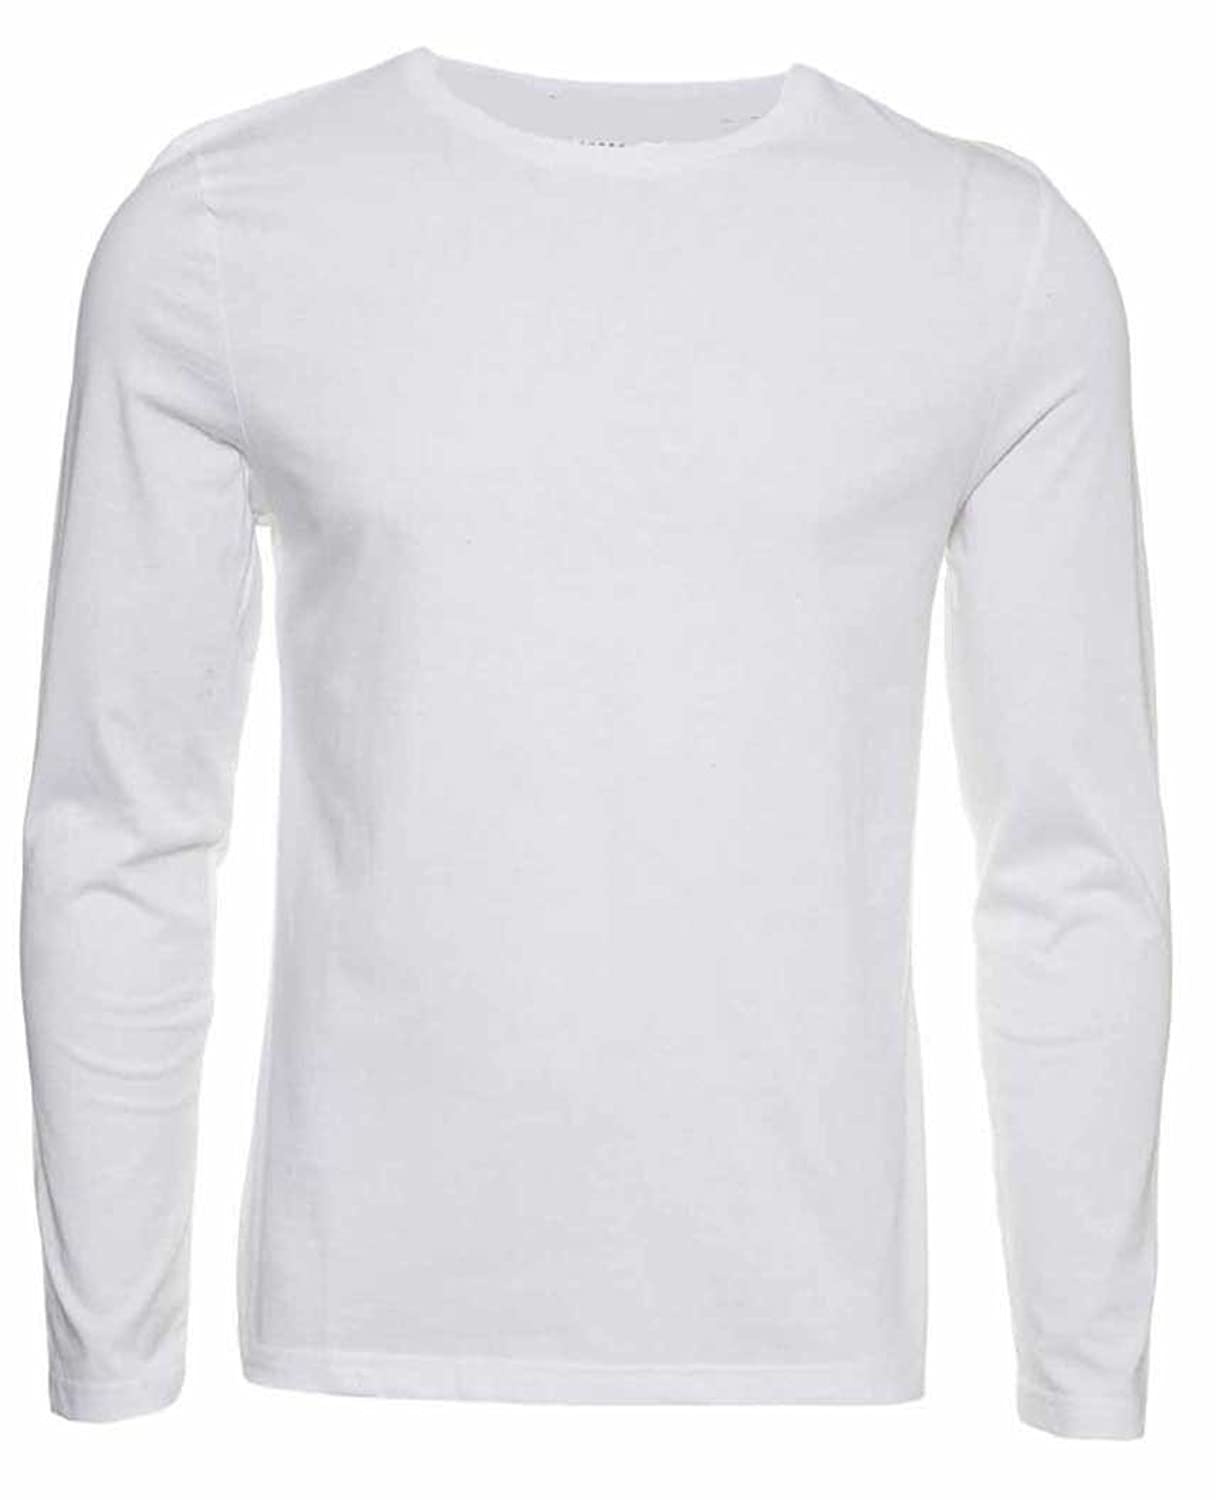 Mens long sleeve white tee shirts custom shirt for Mens long sleeve white t shirt